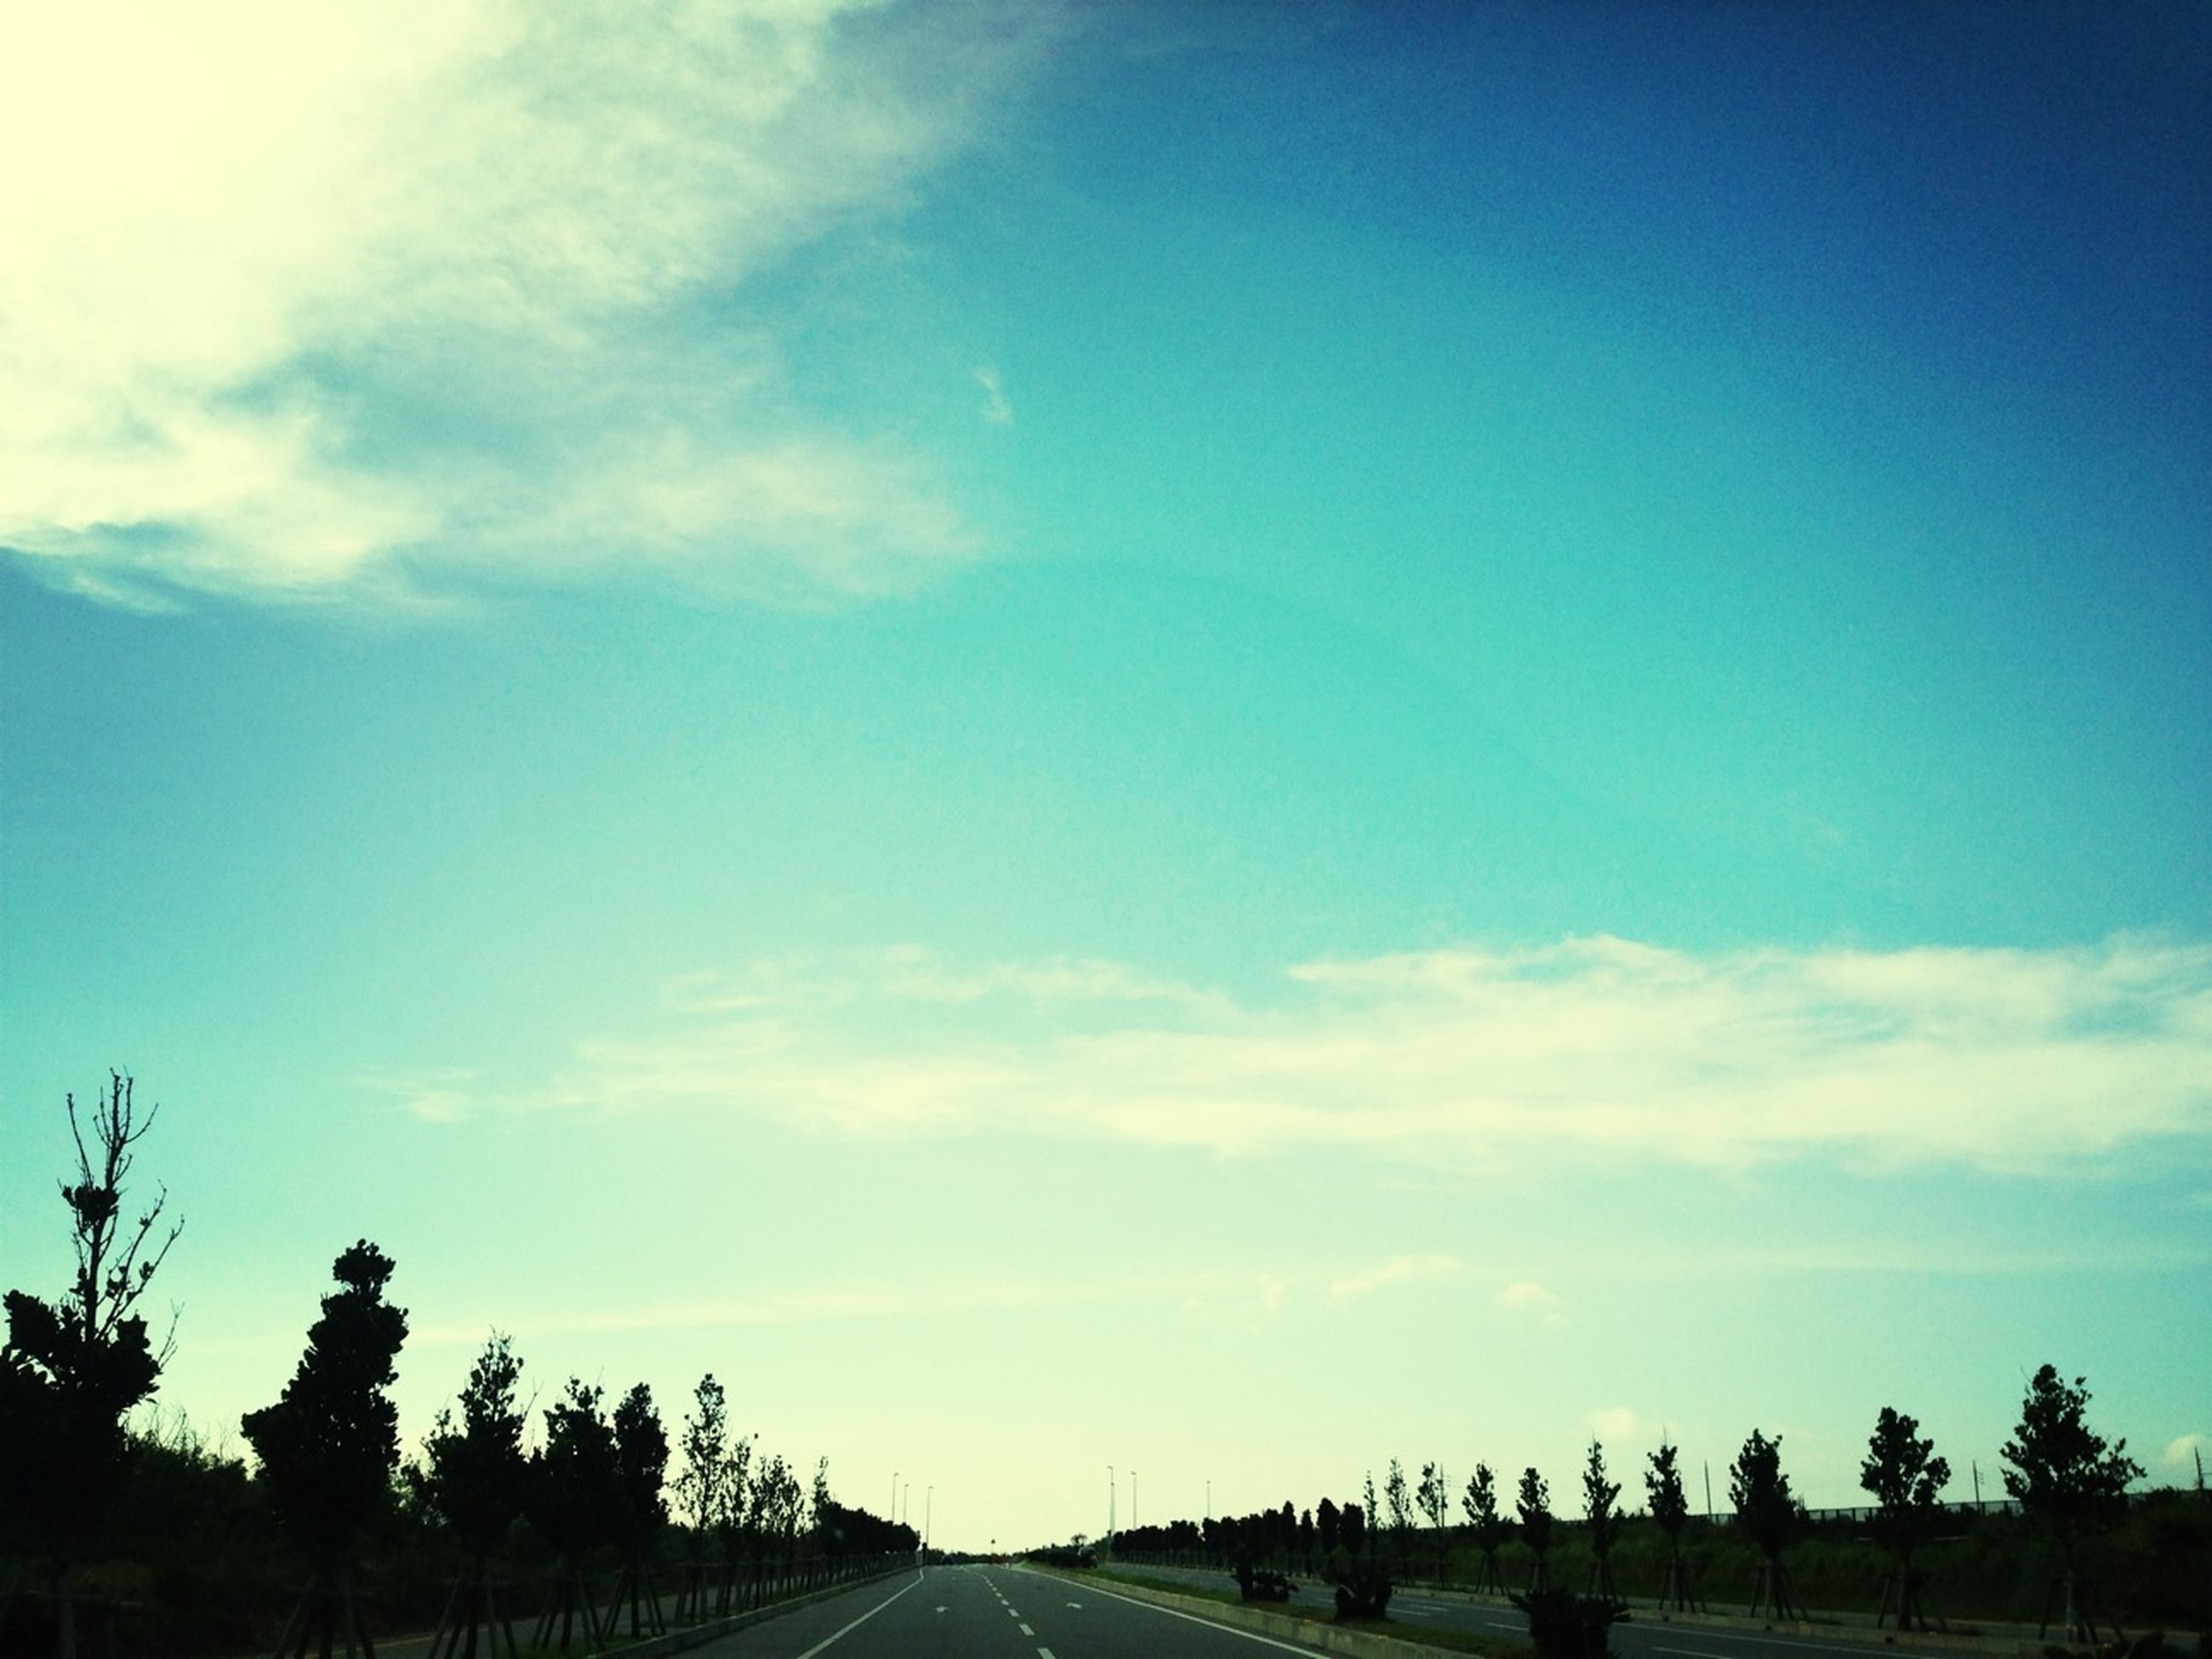 sky, the way forward, road, tree, diminishing perspective, transportation, vanishing point, tranquility, cloud - sky, tranquil scene, blue, nature, cloud, landscape, scenics, beauty in nature, outdoors, silhouette, growth, long